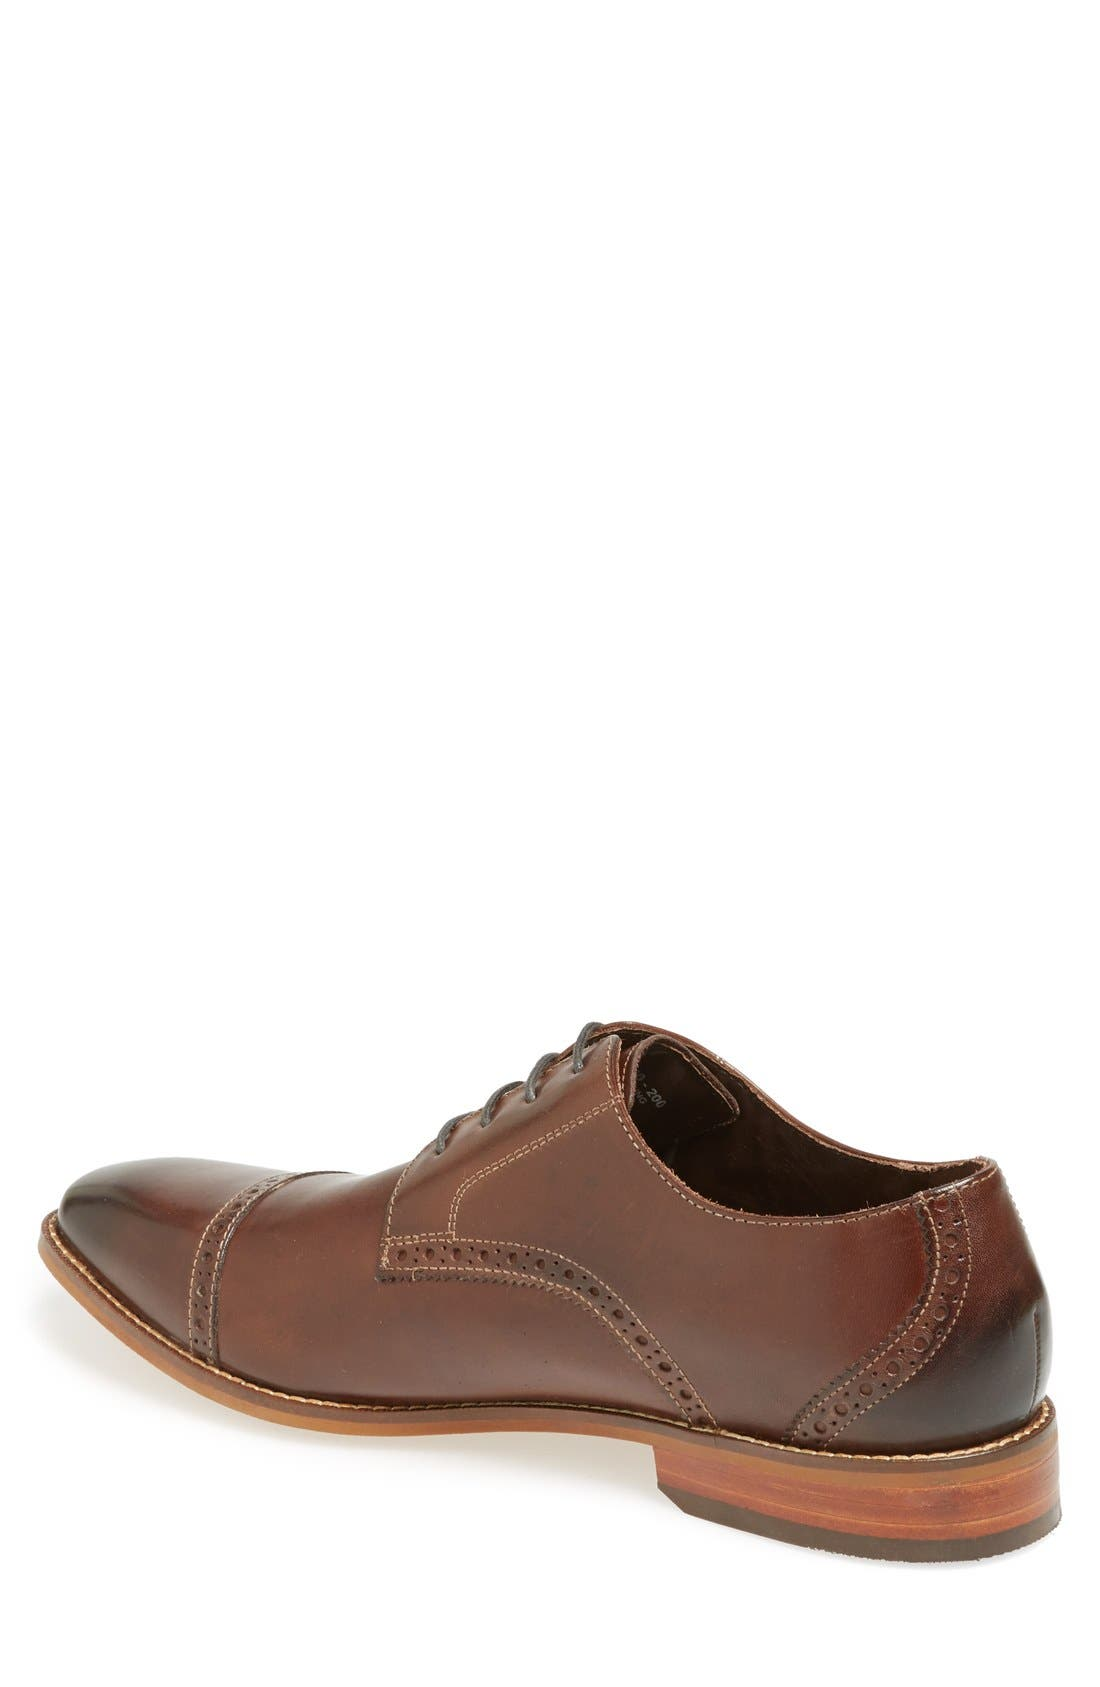 Alternate Image 2  - Florsheim 'Castellano' Cap Toe Derby (Men)